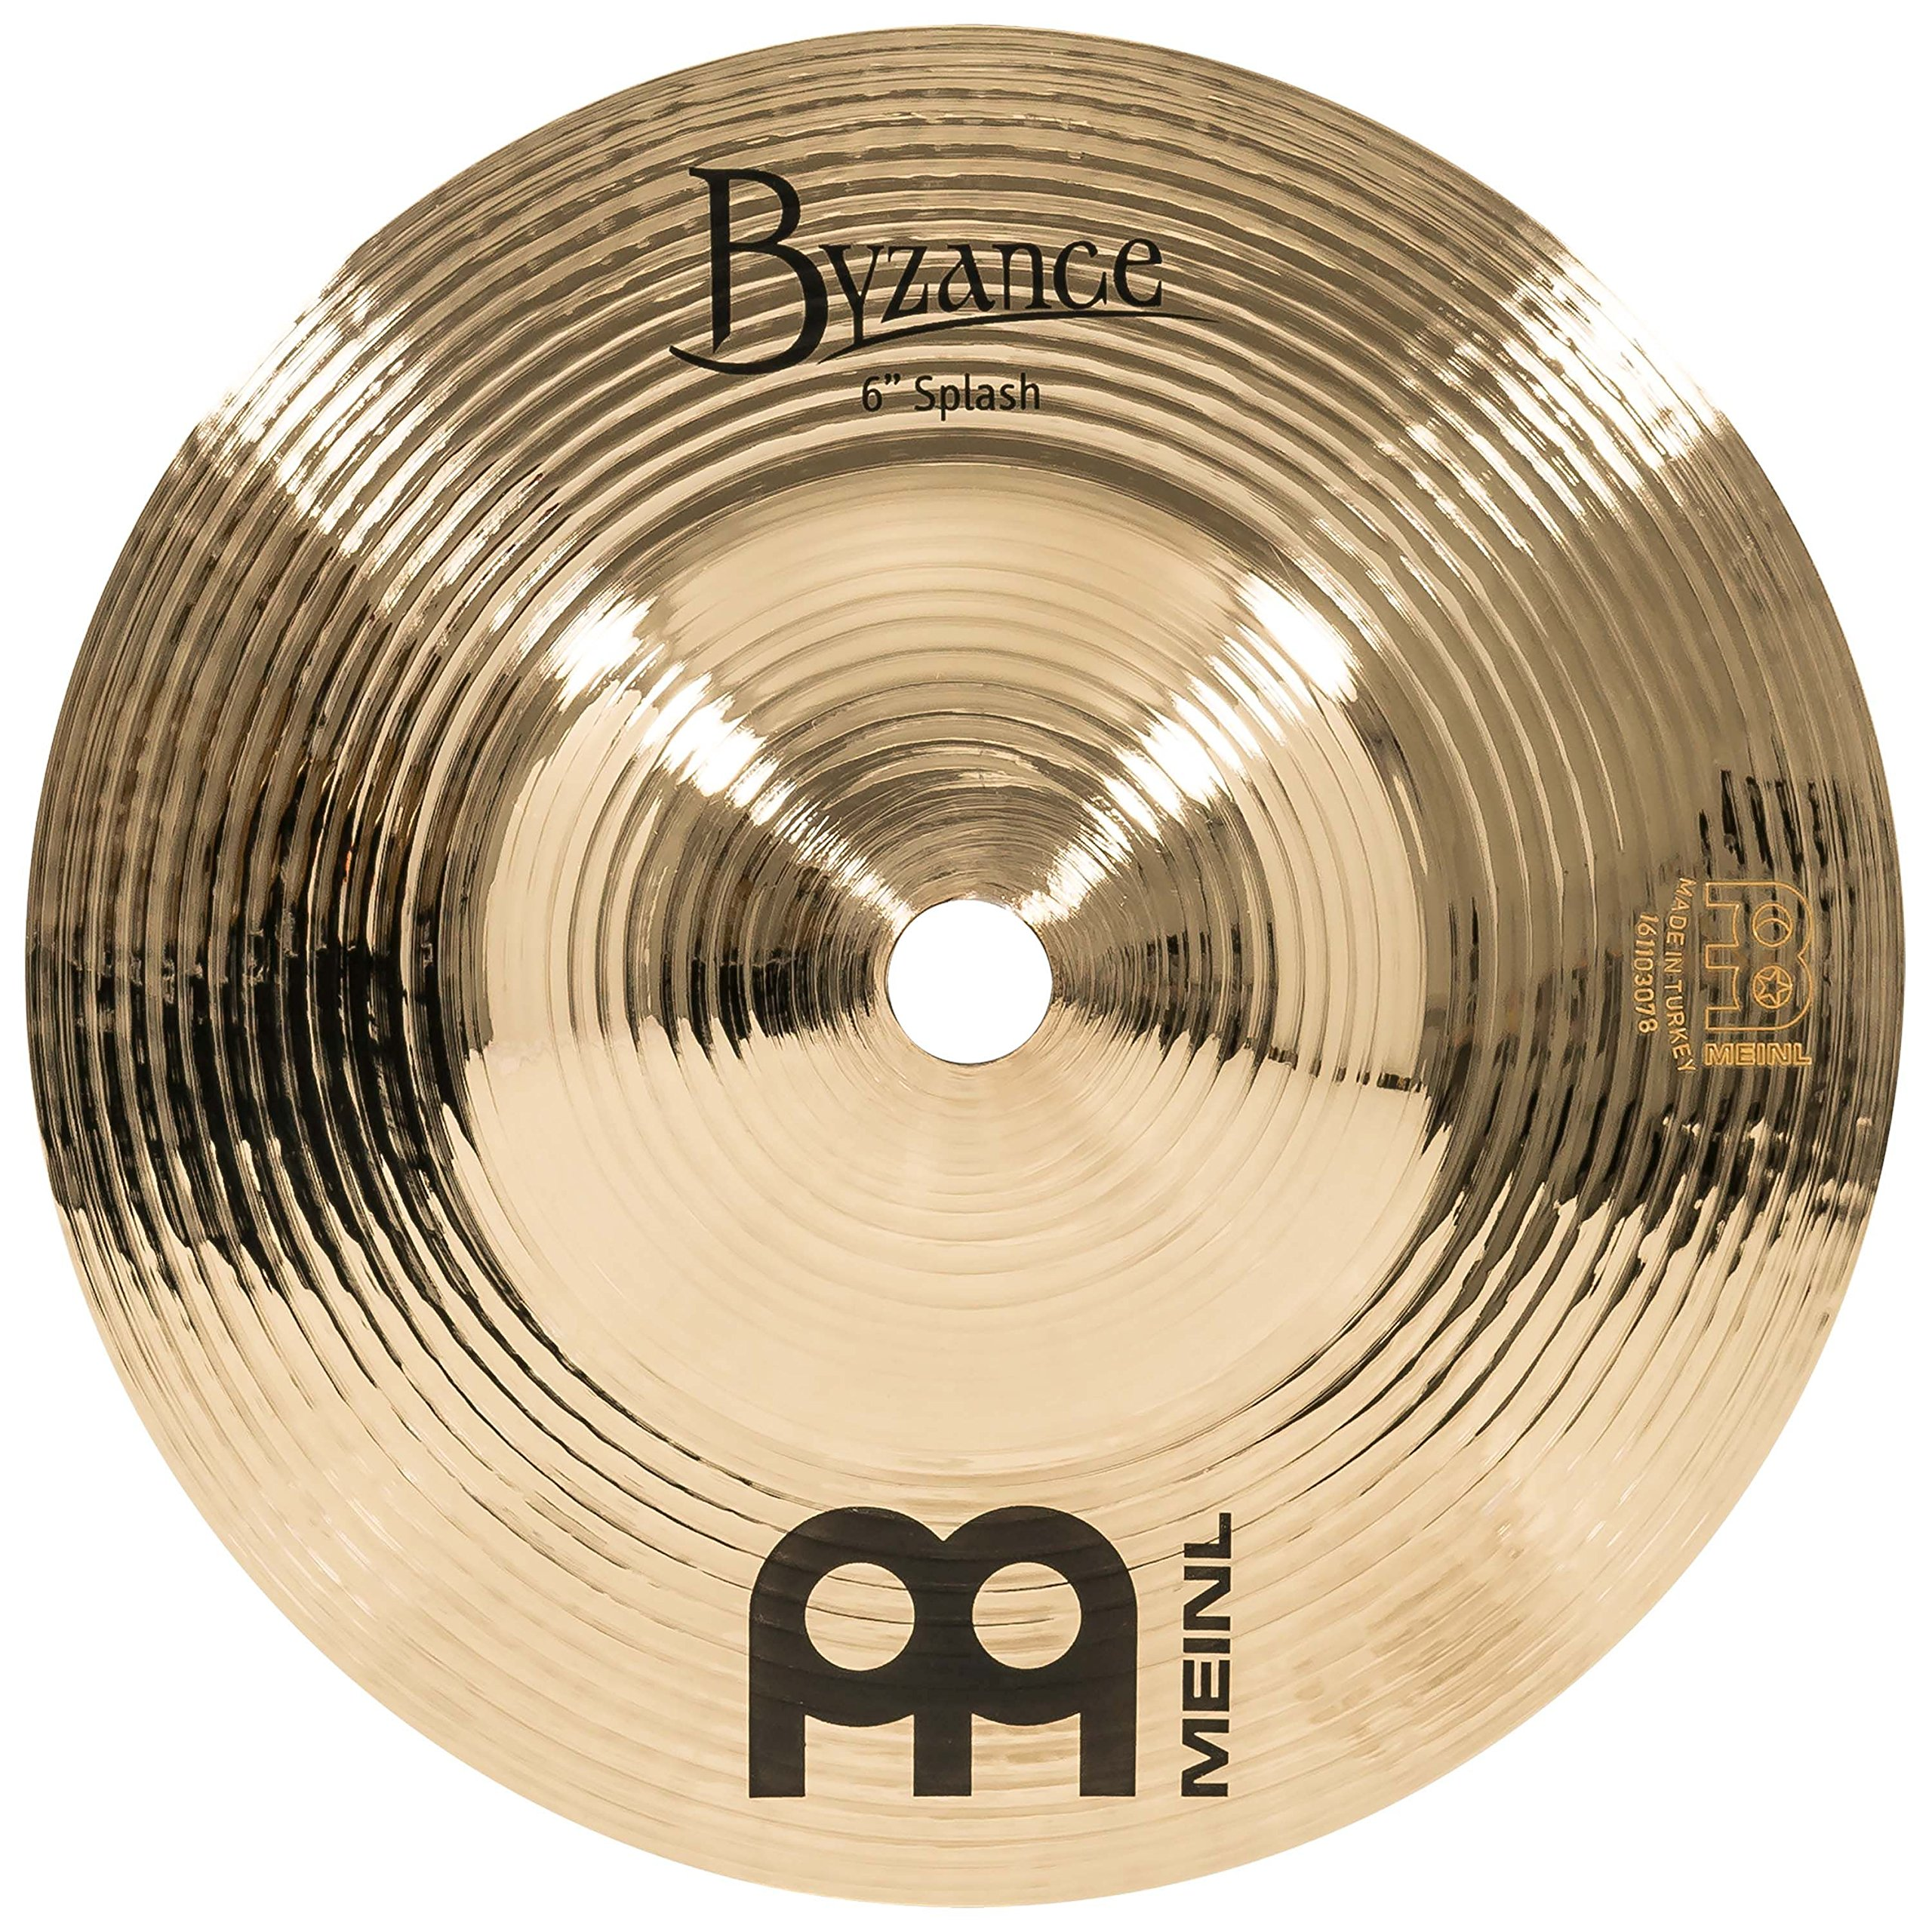 Meinl Cymbals B6S-B Byzance 6-Inch Brilliant Splash Cymbal (VIDEO) by Meinl Cymbals